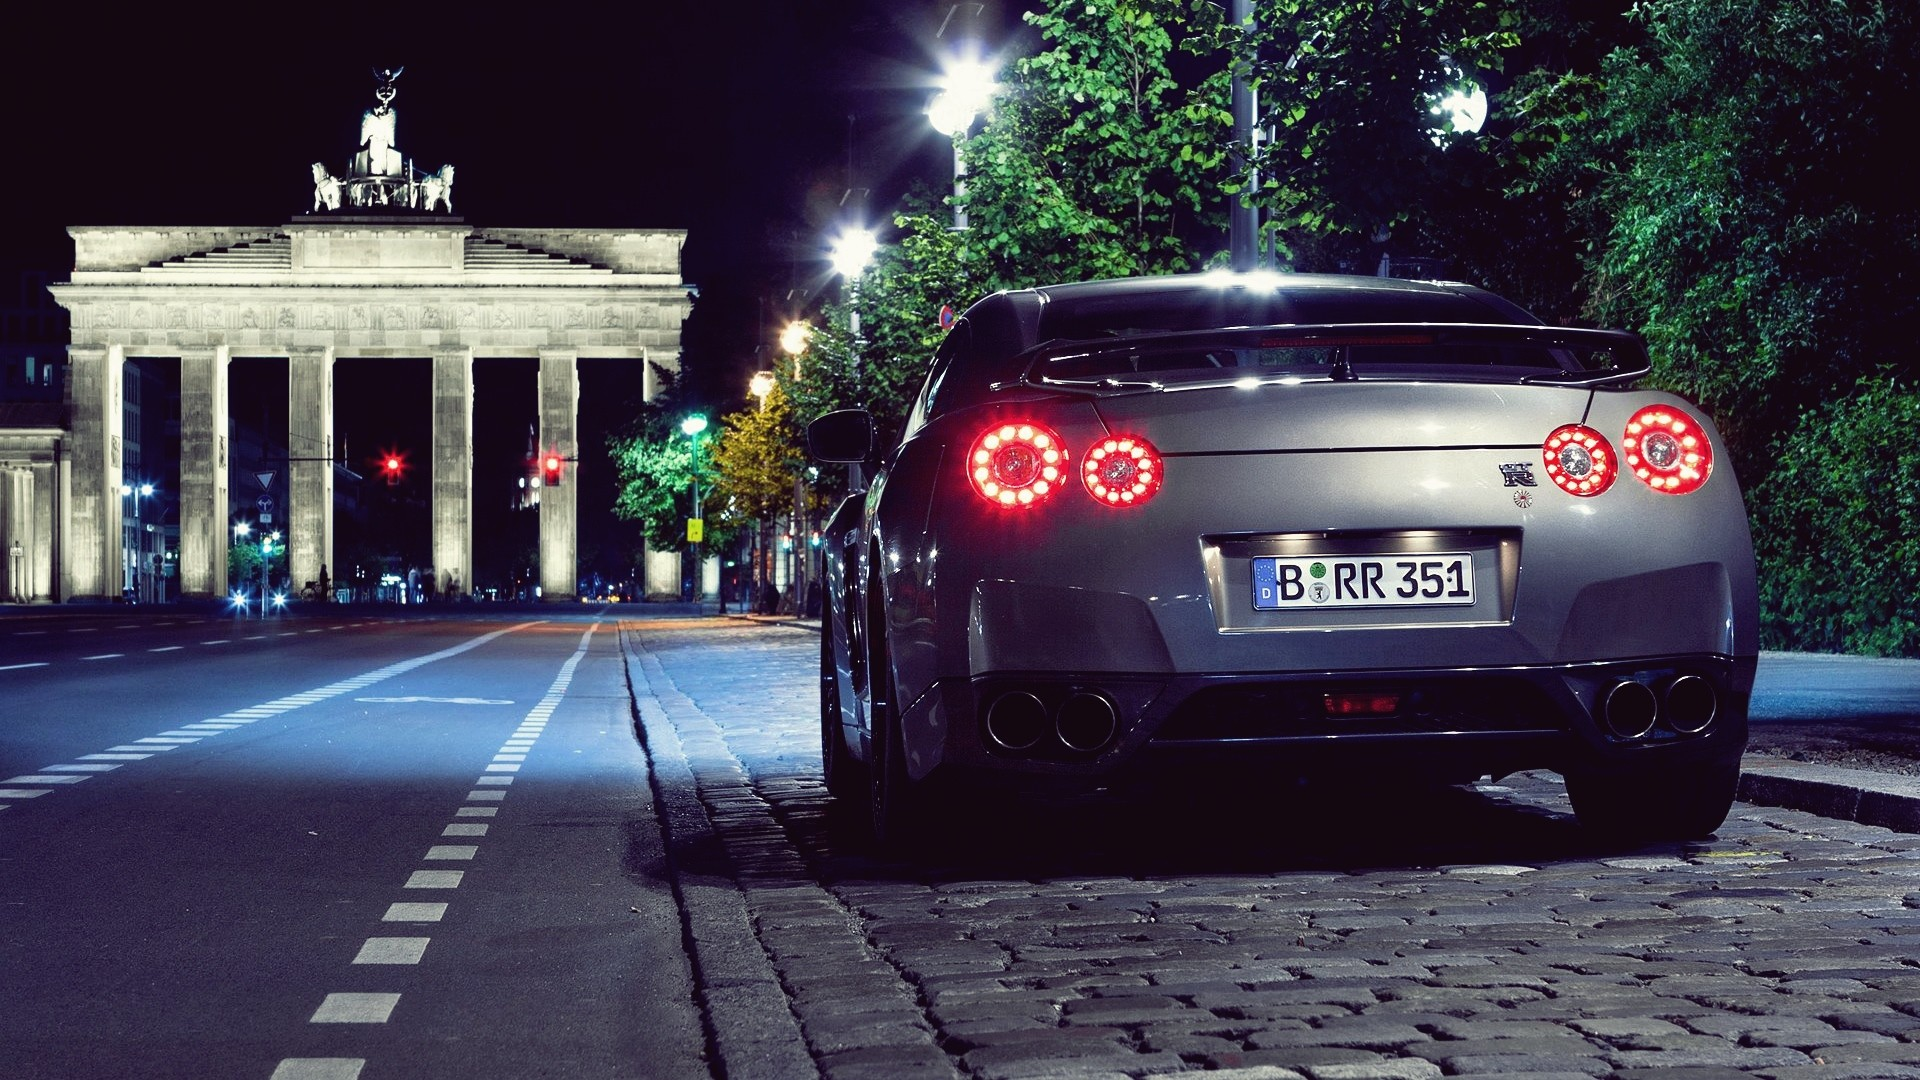 night cars Nissan roads vehicles GTR Nissan R35 GT R Nissan 1920x1080